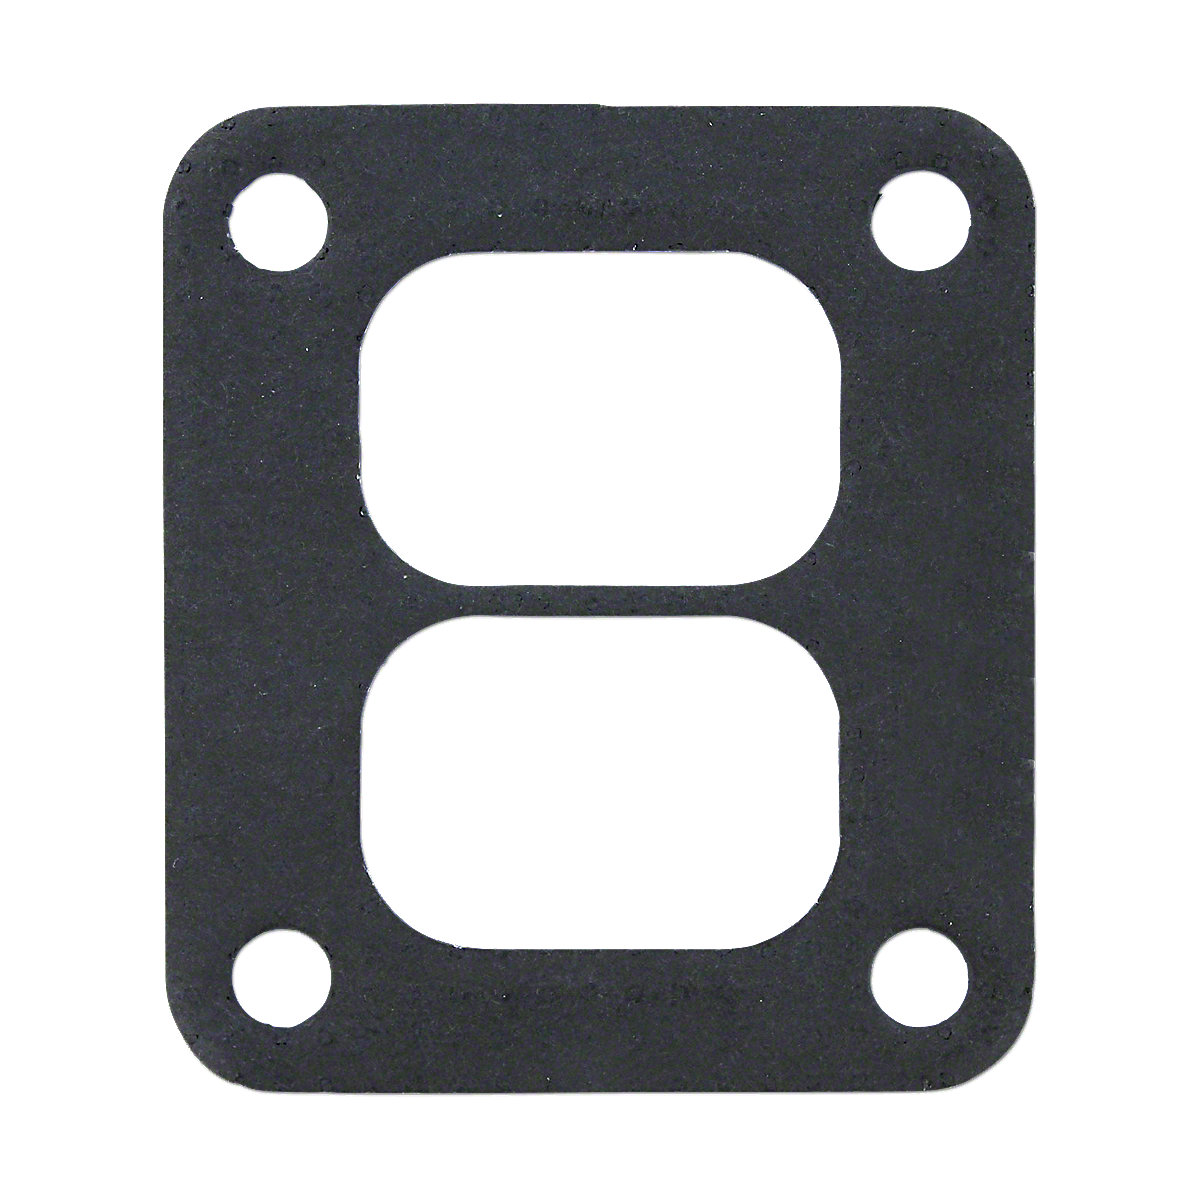 Turbo To Exhaust Manifold Mounting Gasket For Massey Ferguson: 1105, 1130, 1135.